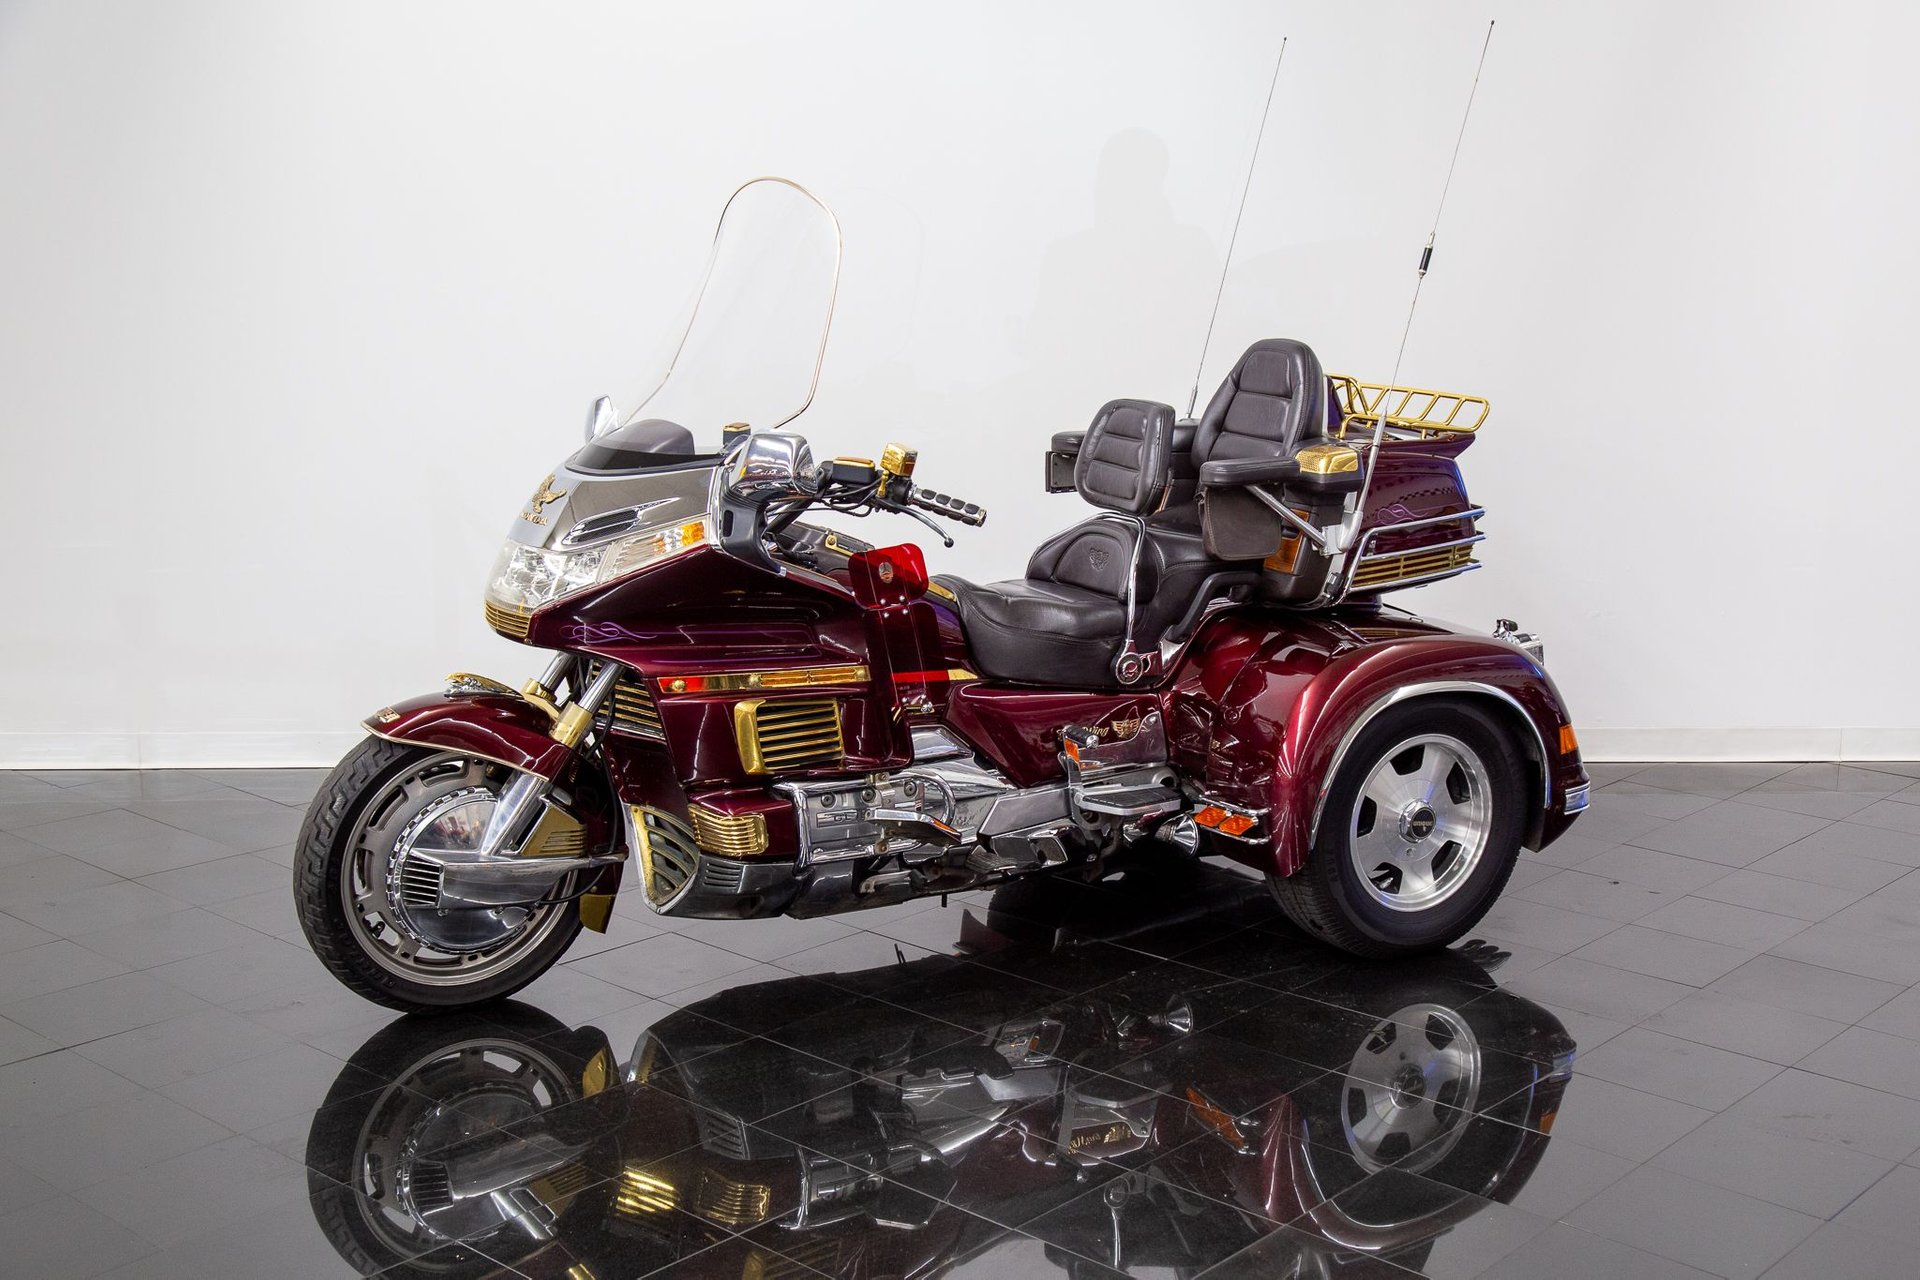 1989 honda gold wing motorcycle gl1500